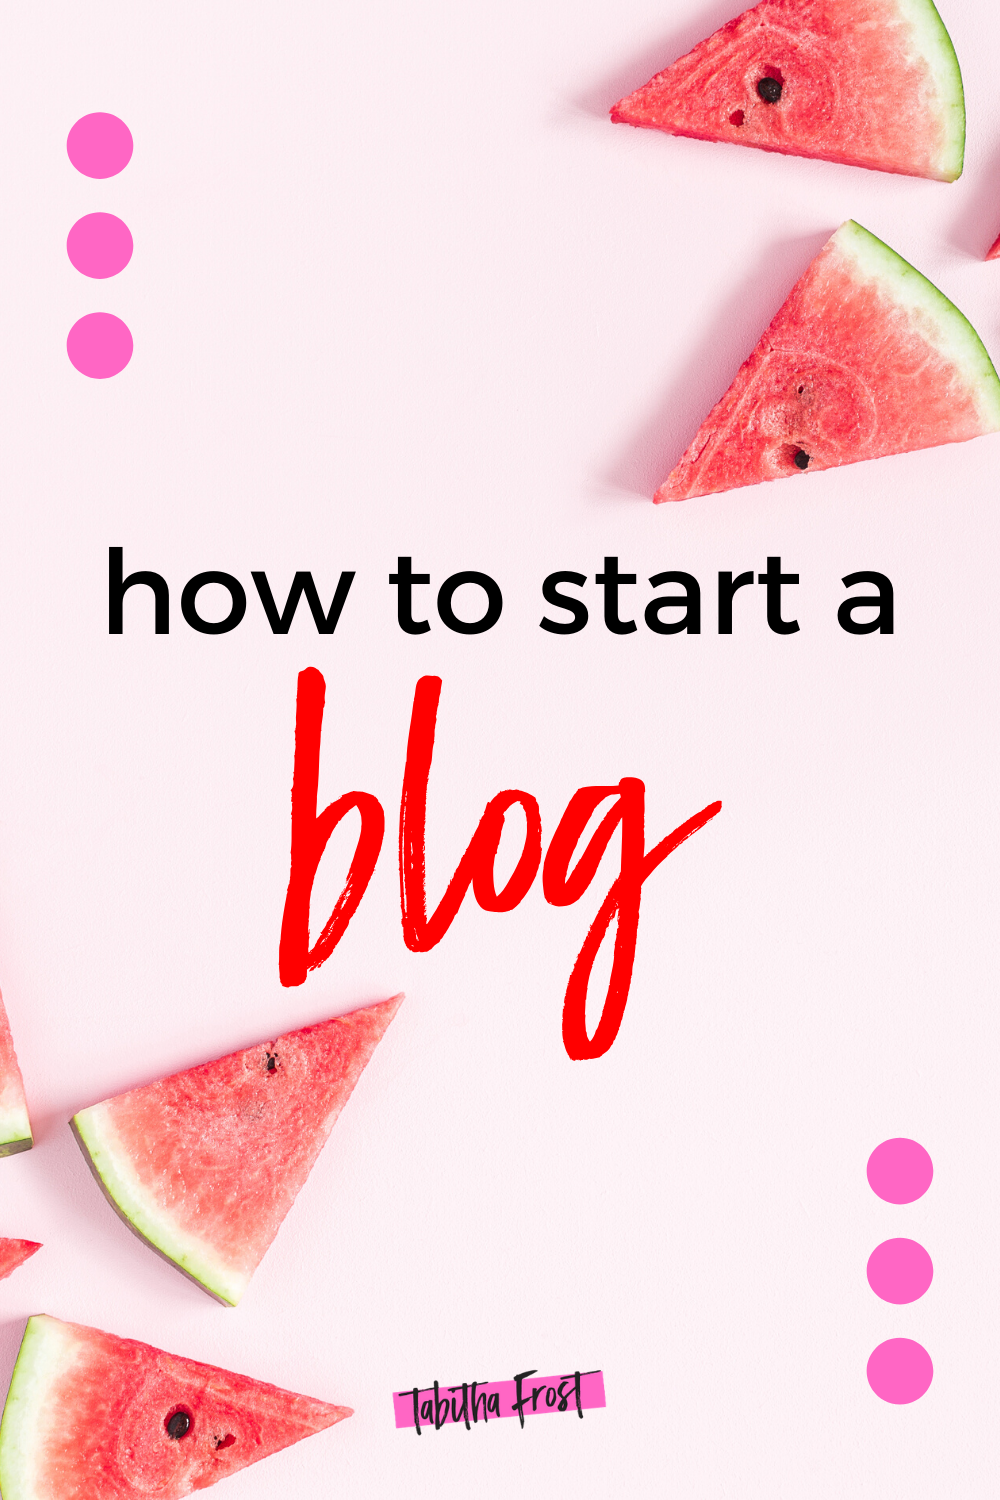 How to start a blog on a budget, while in college, for profit, to start a mom blog so you can work from home - all while with no experience in 2019. #blog #momblog